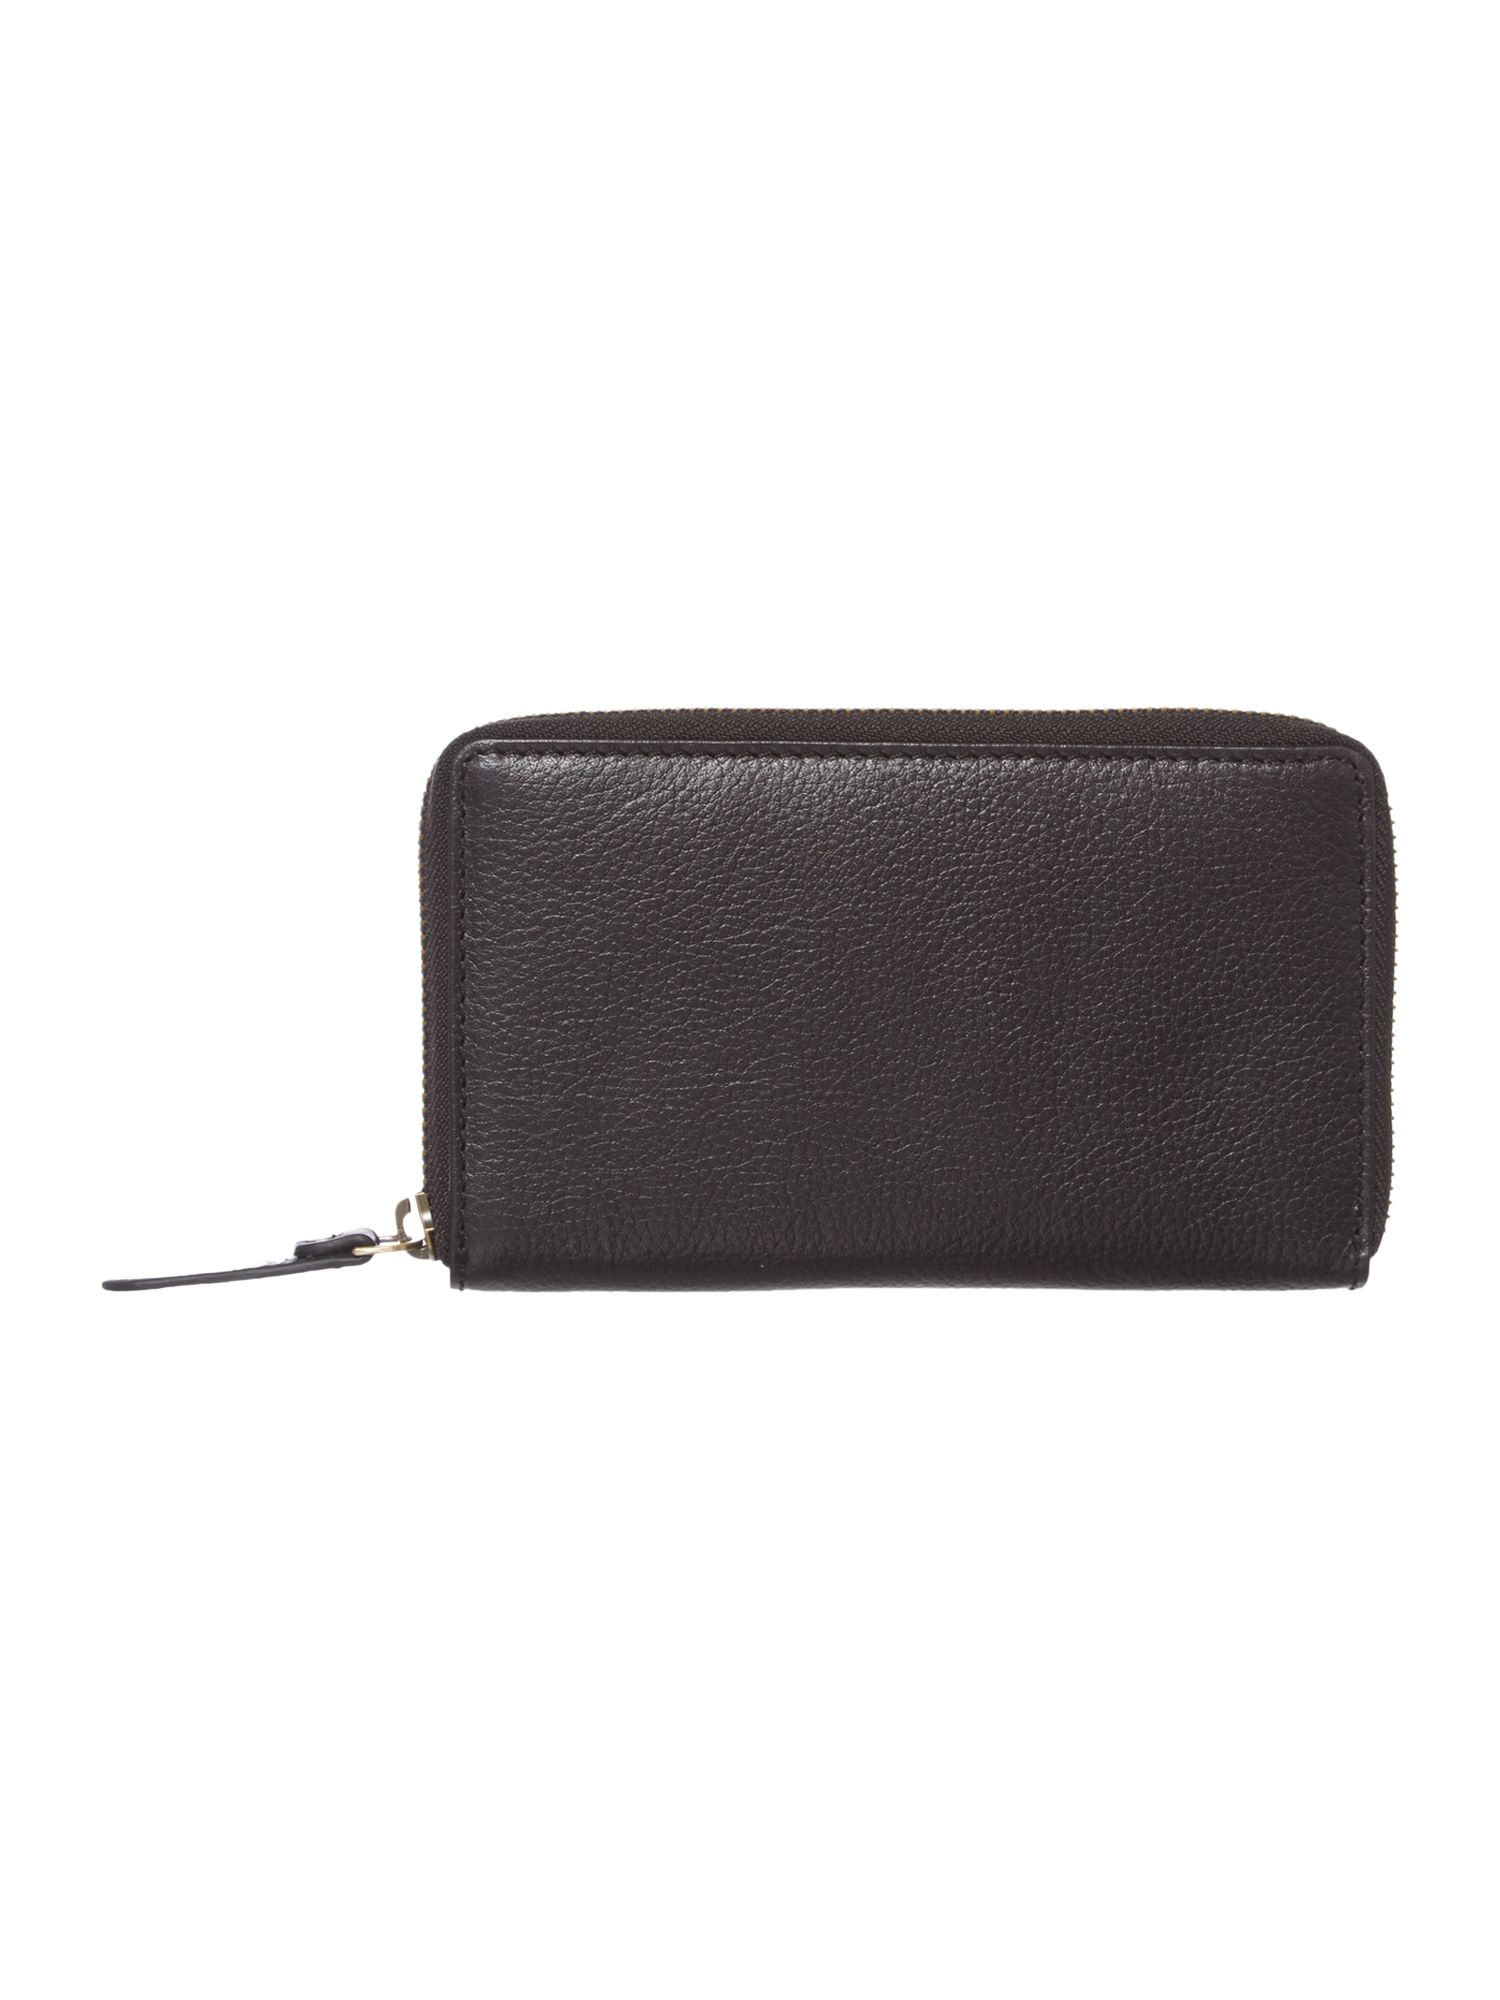 Nikki black large zip around purse